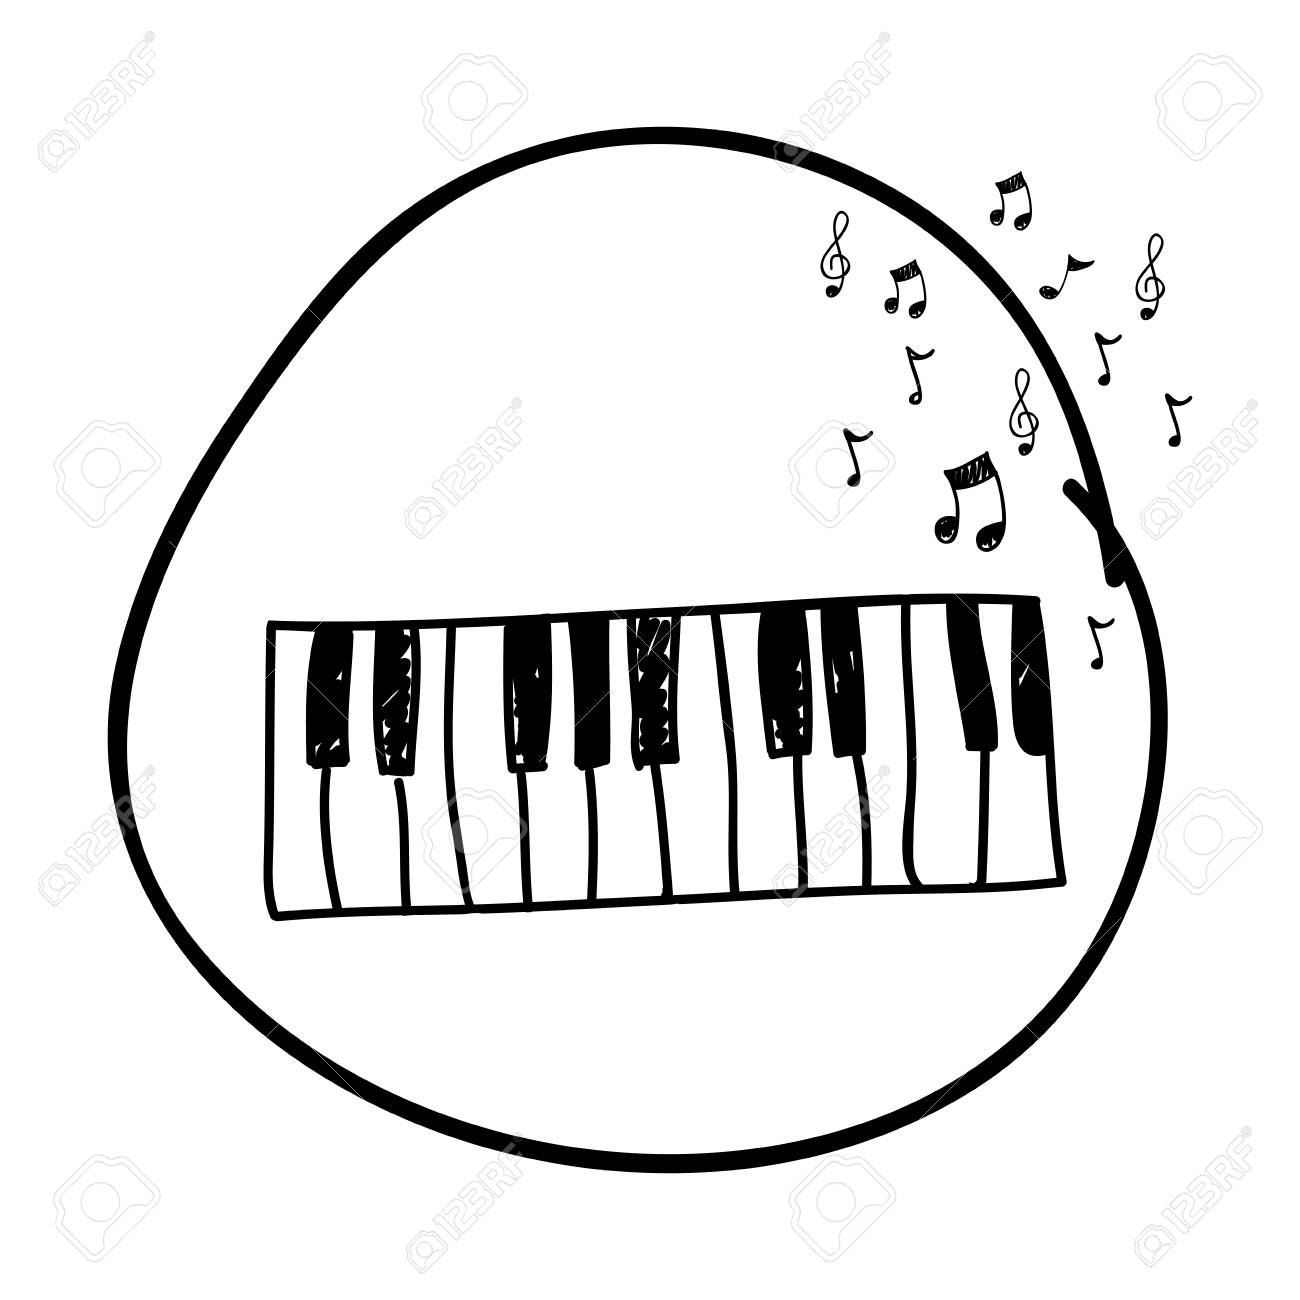 Monochrome Hand Drawing Of Piano Keyboard In Circle And Musical Royalty Free Cliparts Vectors And Stock Illustration Image 97498996 A wide variety of piano drawings options are available to you, such as usage, material, and plastic type. monochrome hand drawing of piano keyboard in circle and musical